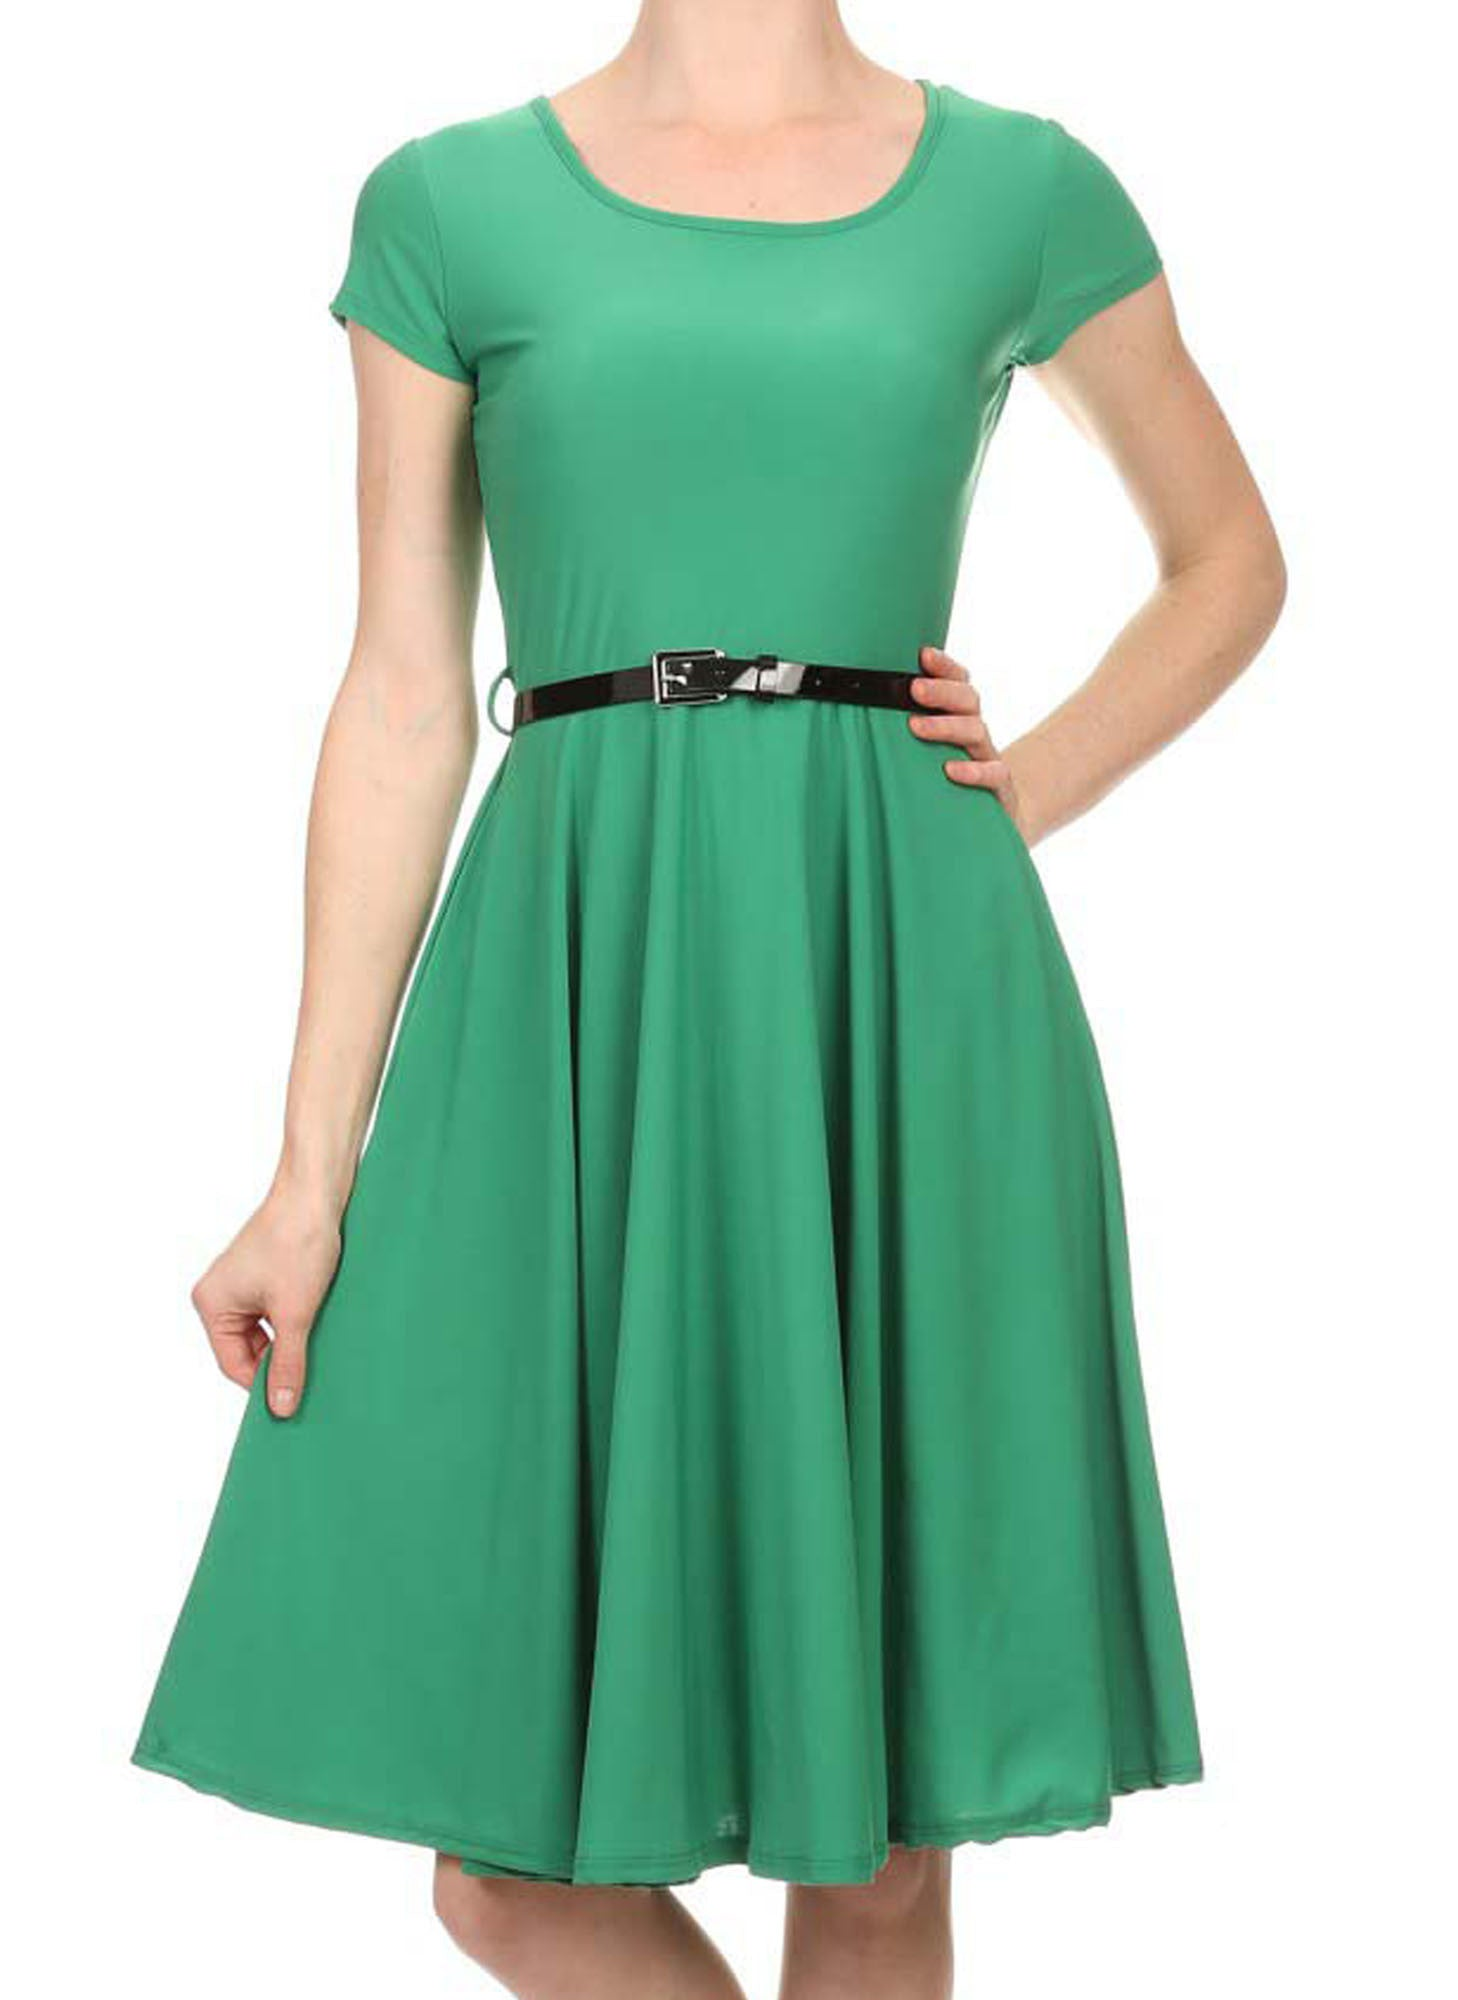 Avital Belted Slimming Stretch Day Dress (Green Solid),Dress,Avital - Discount Divas